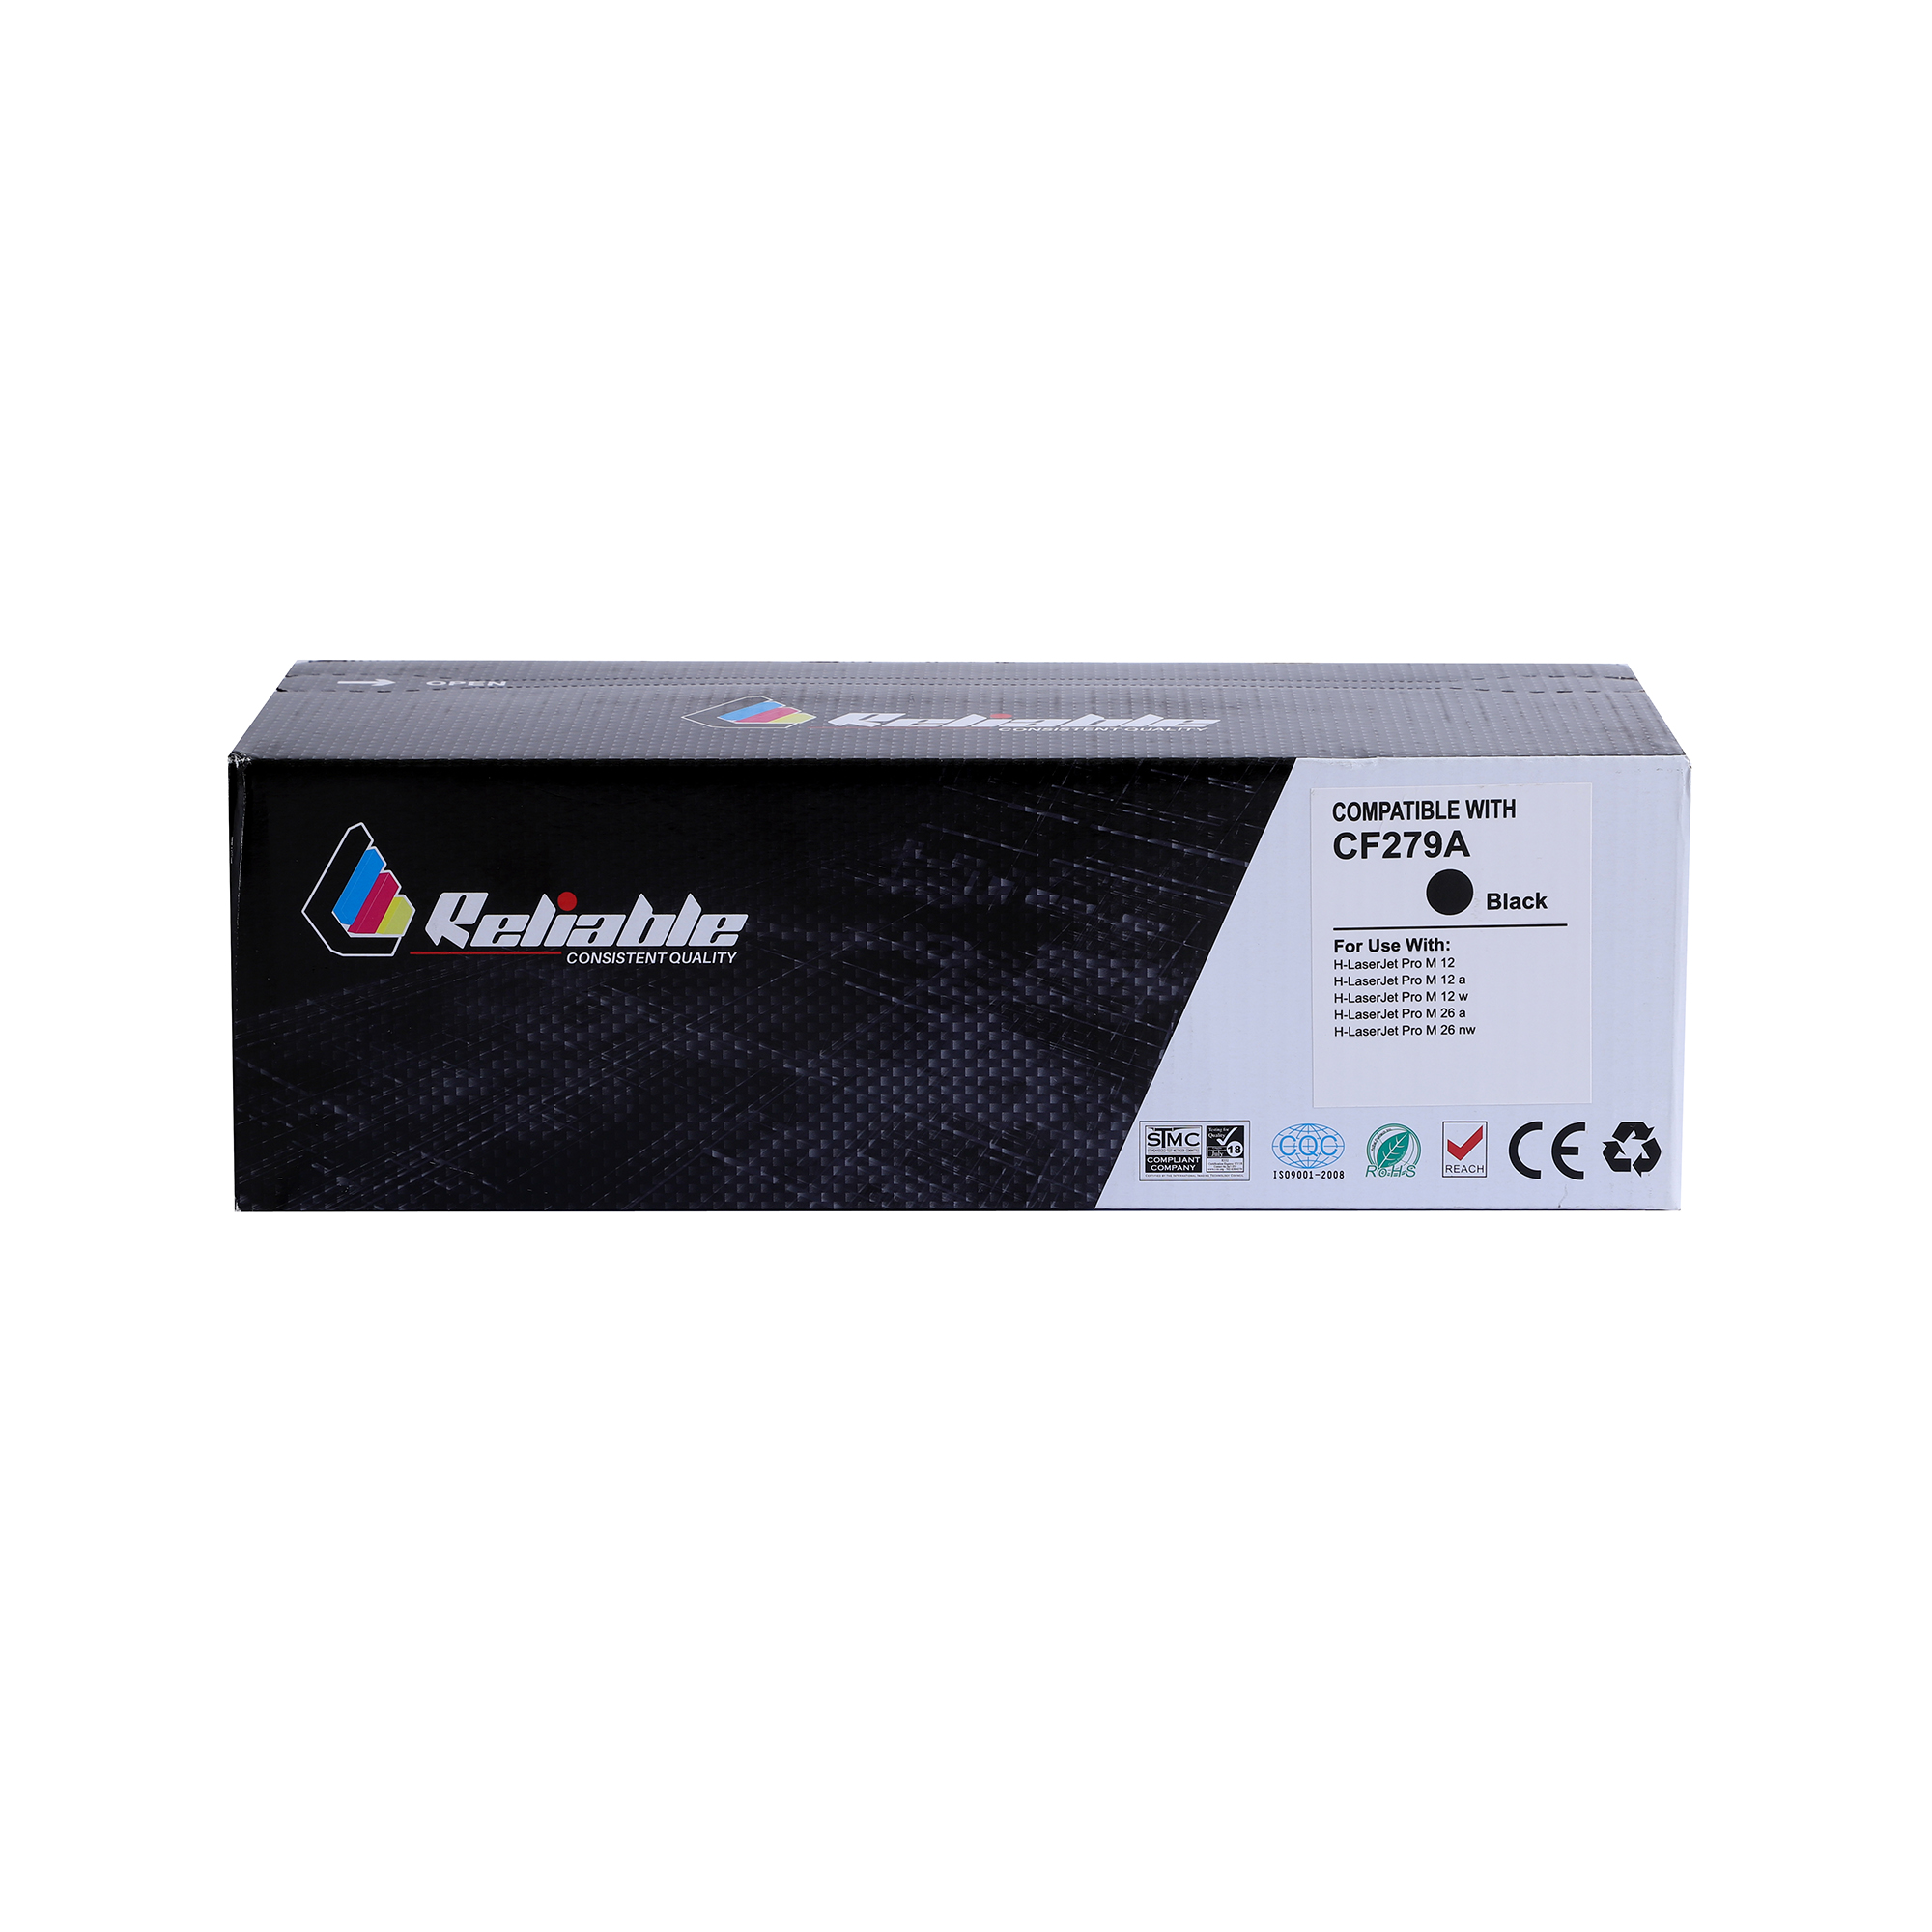 Reliable 79A (CF279A) Compatible Toner Cartridge - Black